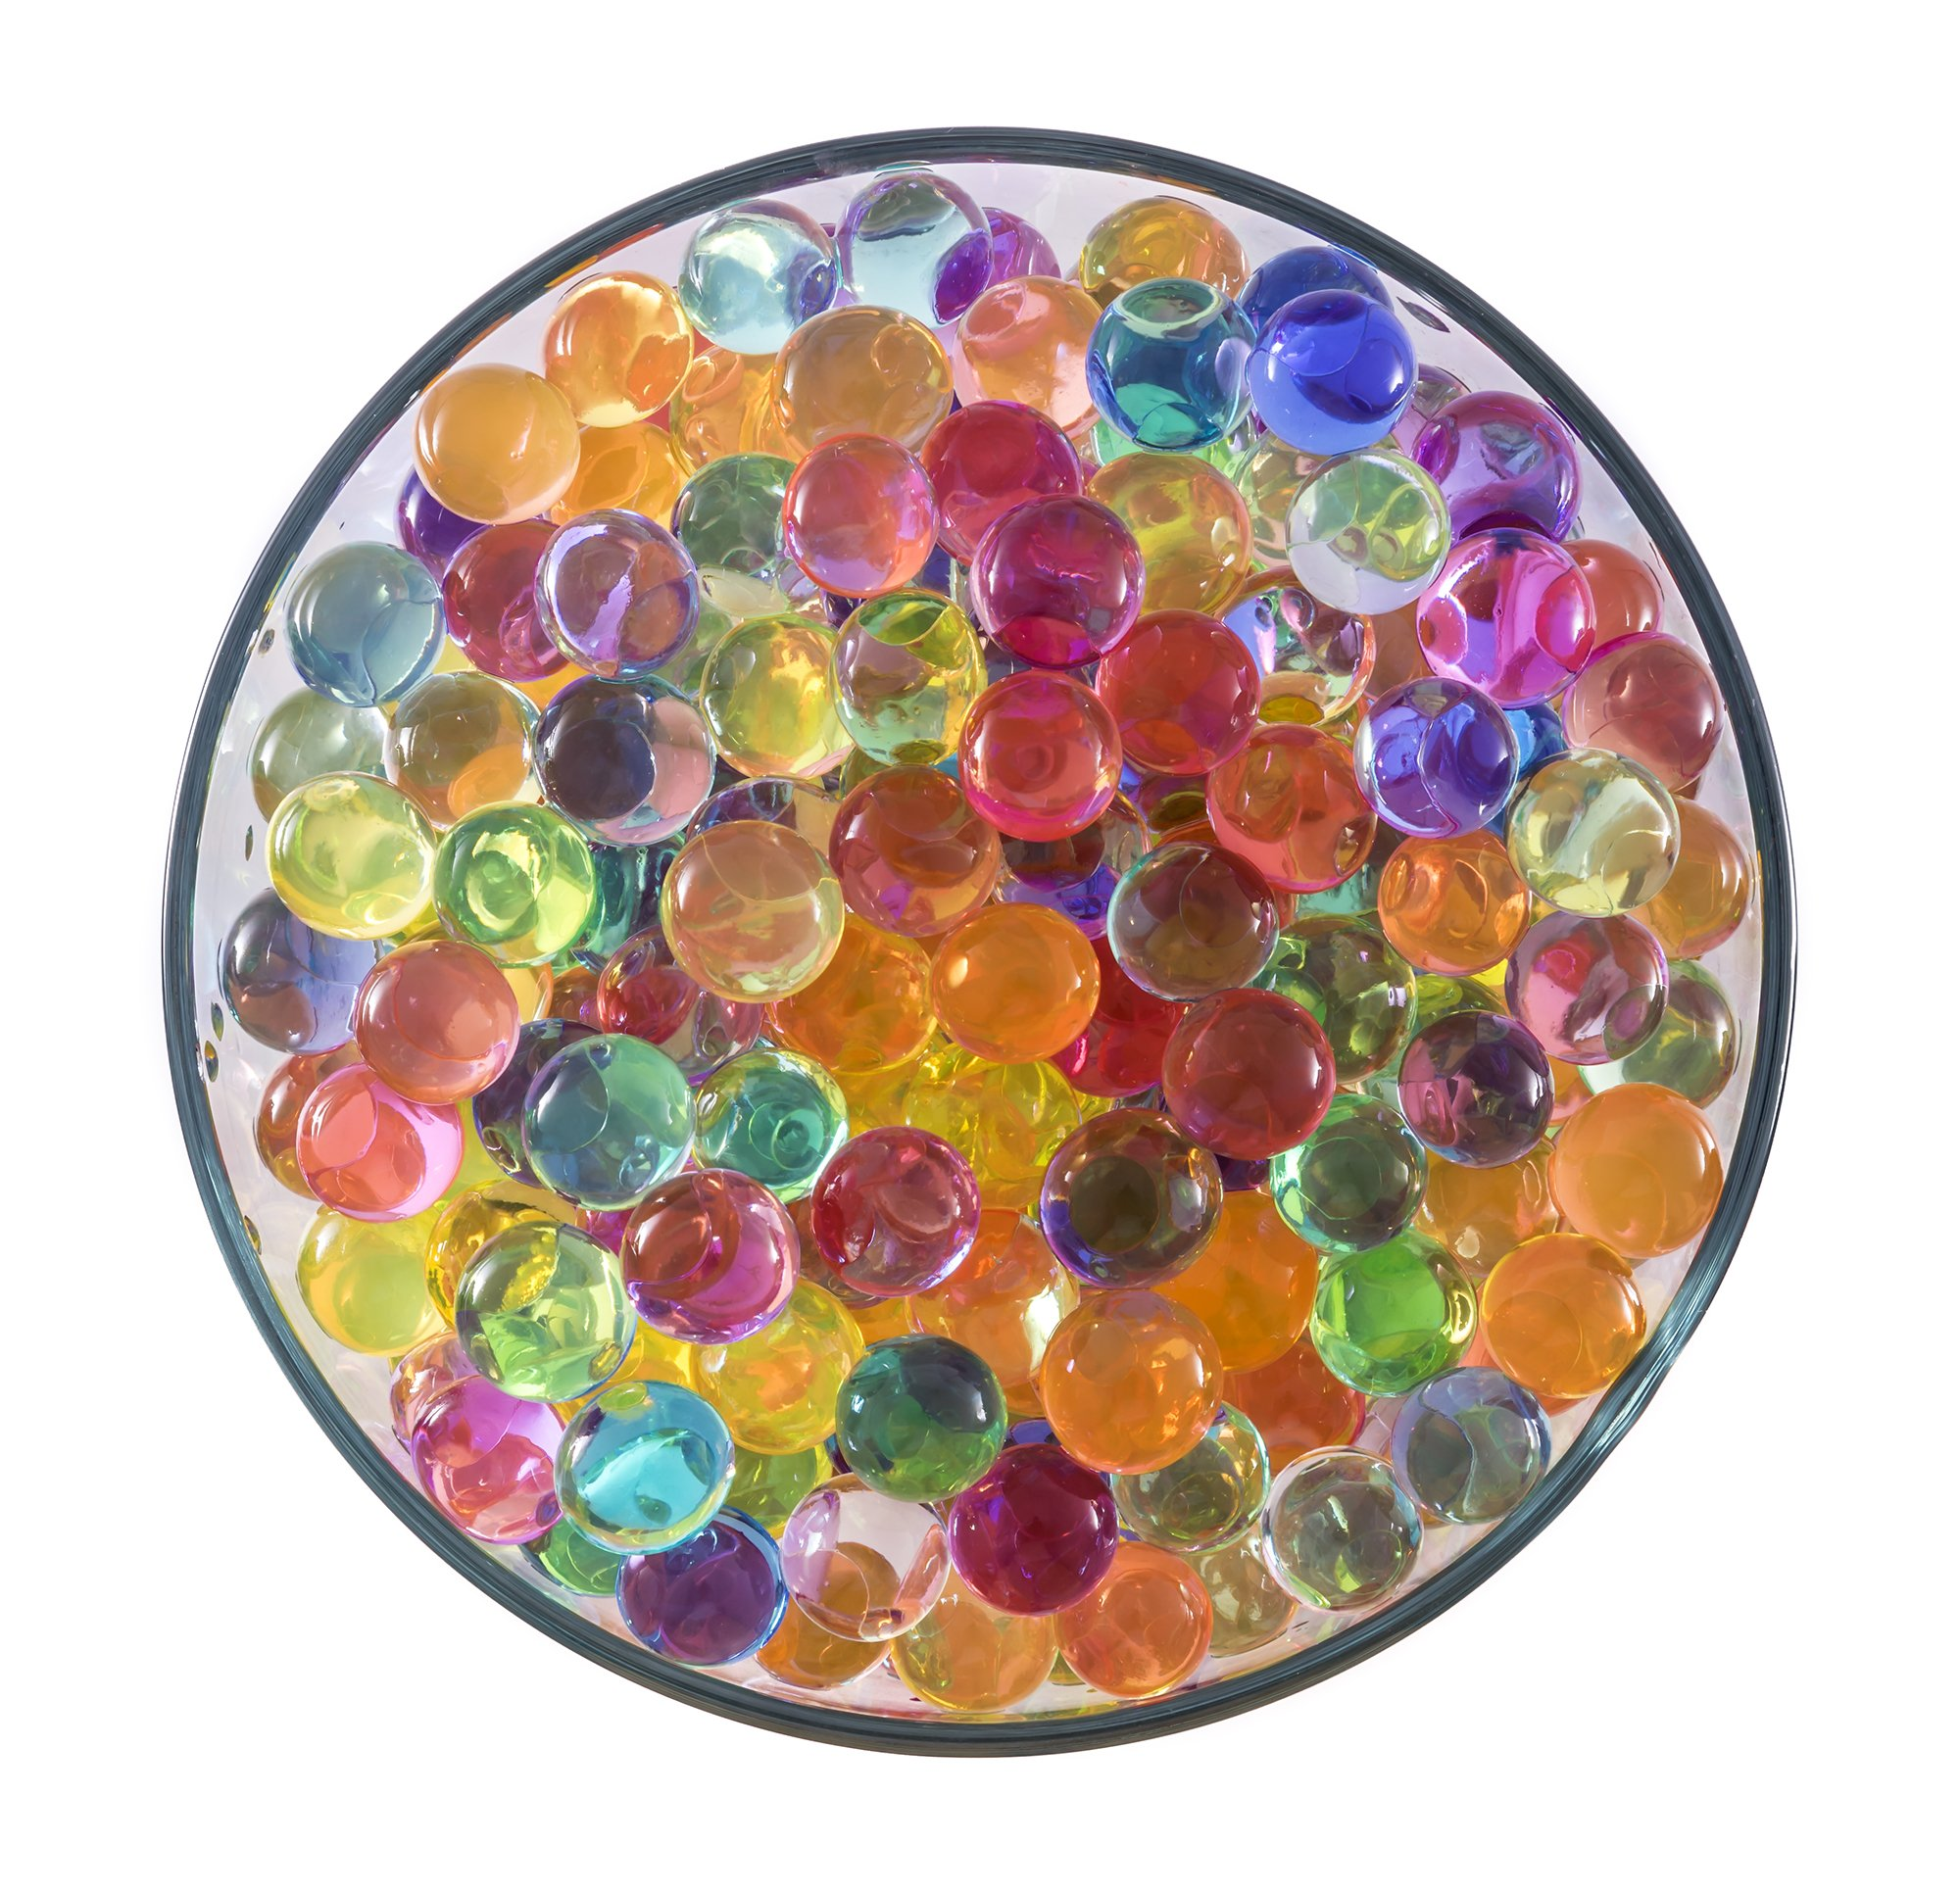 4000 Water Beads Gift Vase Filler with 6 AMAZING COLORS 36 INDIVIDUAL PACKS Expanding Water Beads 5 Grams per Individual Pack Water Sensory Toy for Children Non-Toxic Decorative Crystal Soil